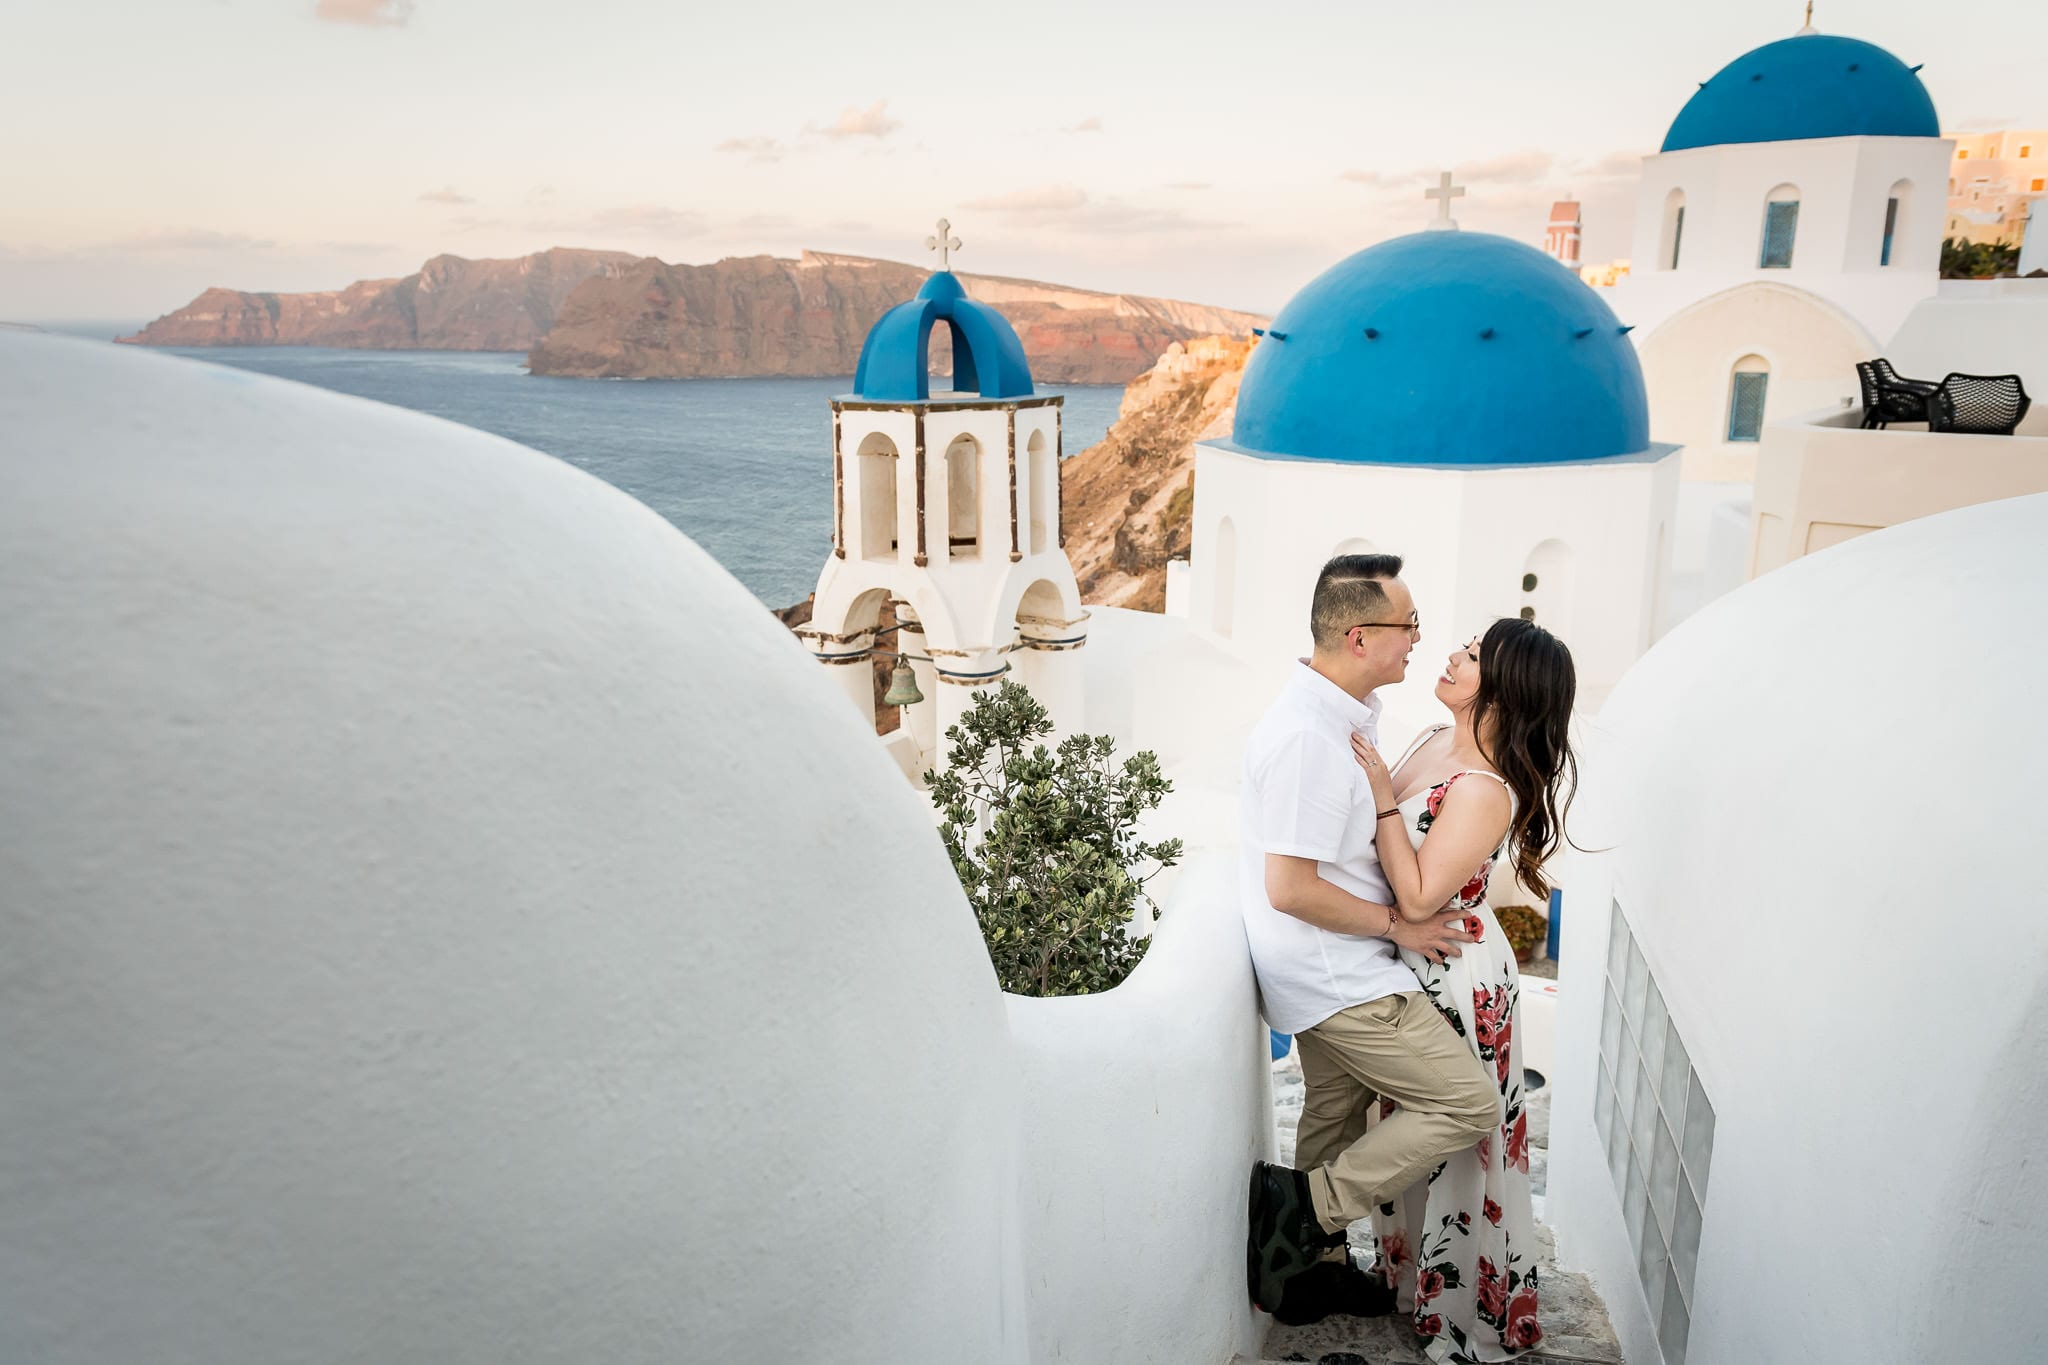 Santorini Honeymoon photo session image with a couple embracing on very unique set of white stairs with the three blue domes of Santorini in the background